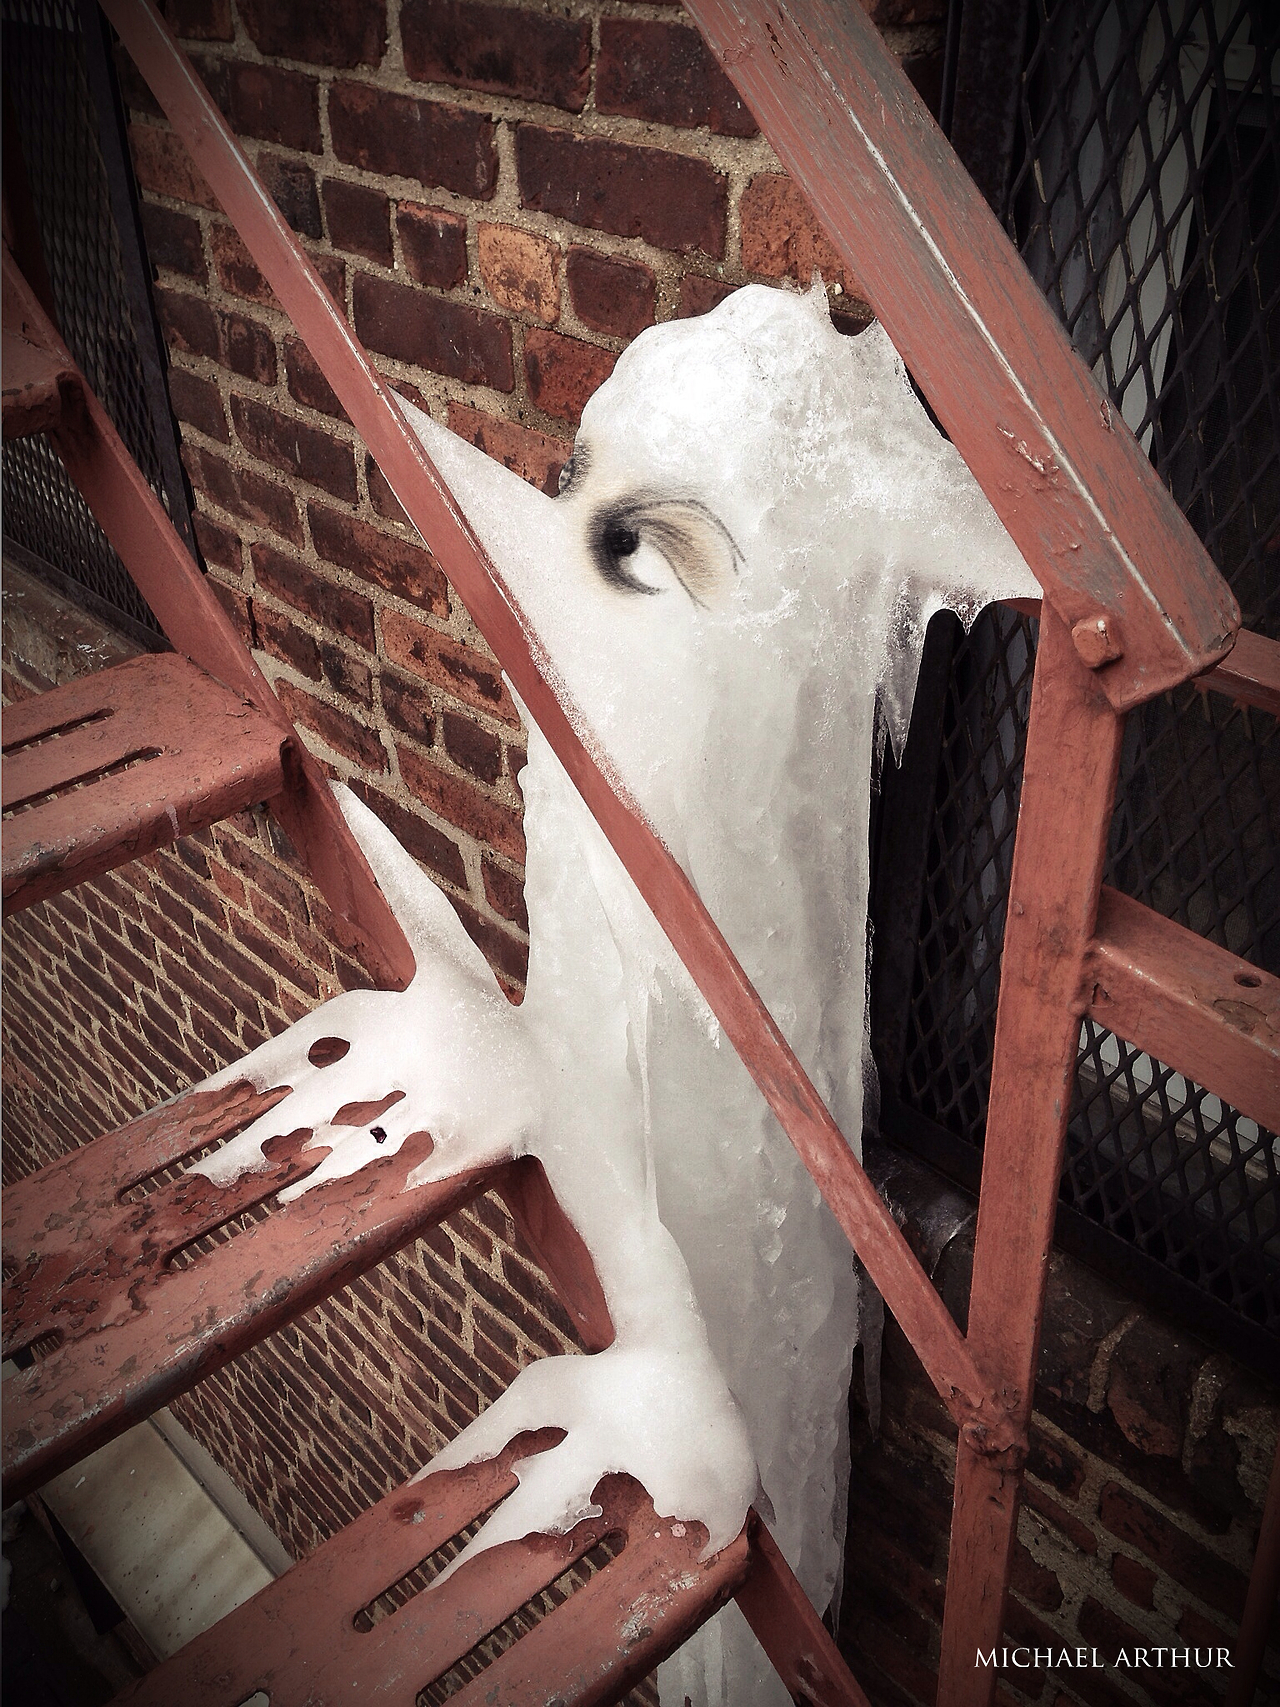 Out back of the studio, there's an ice monster.